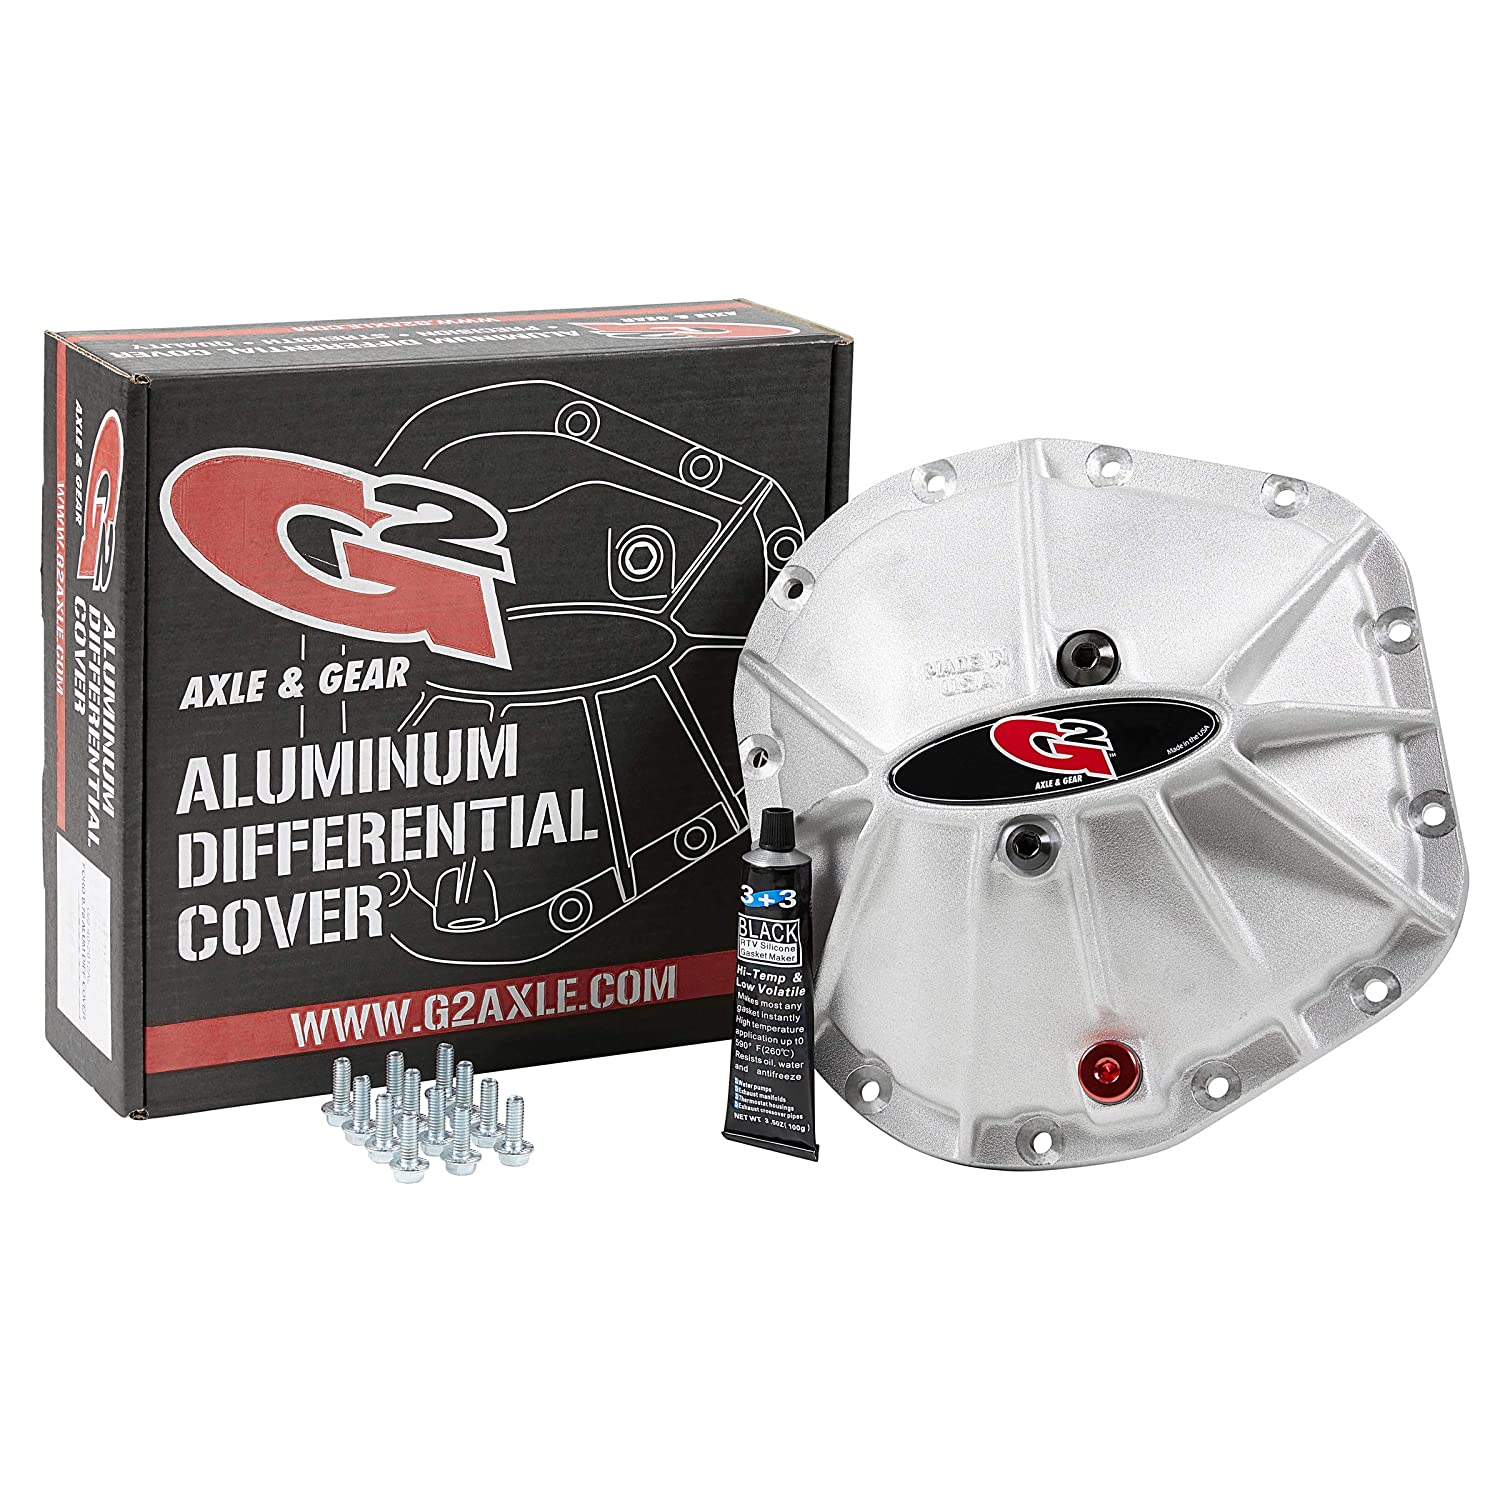 G2 Axle & Gear 40-2046AL G-2 Aliminum Differential Cover